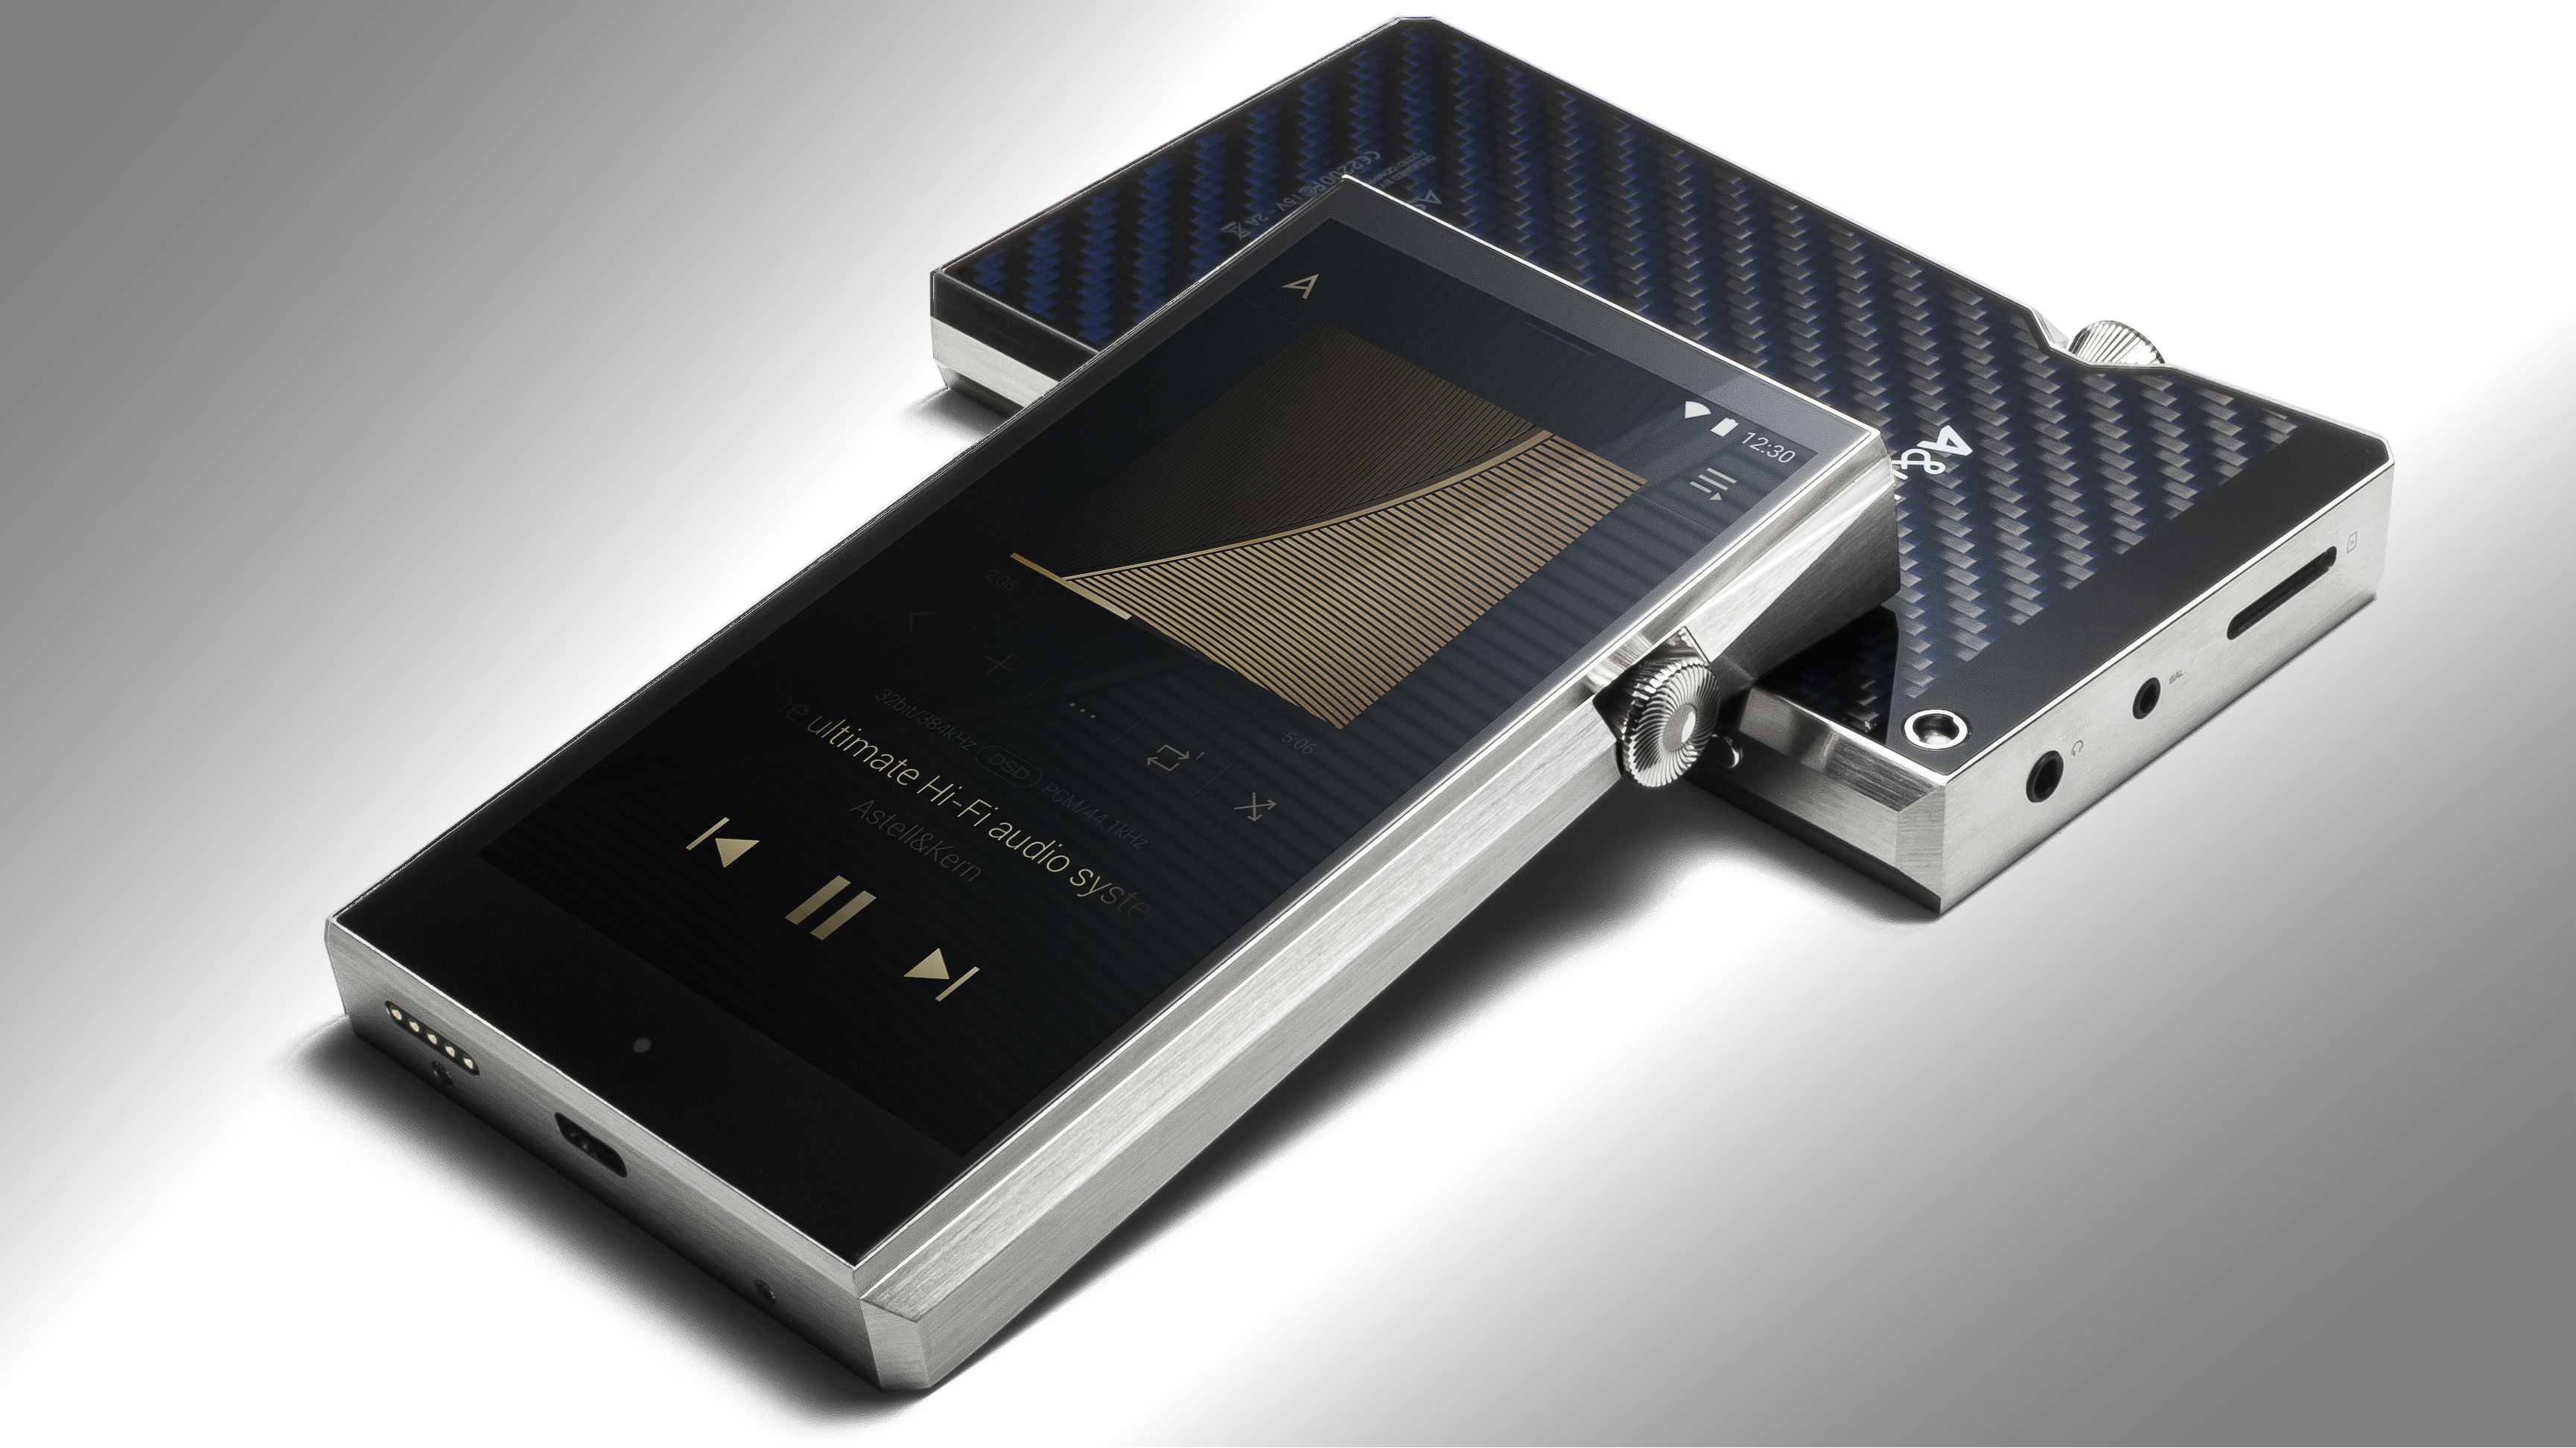 Astell Amp Kern S New Hi Res Player Has A Bizarre Name And